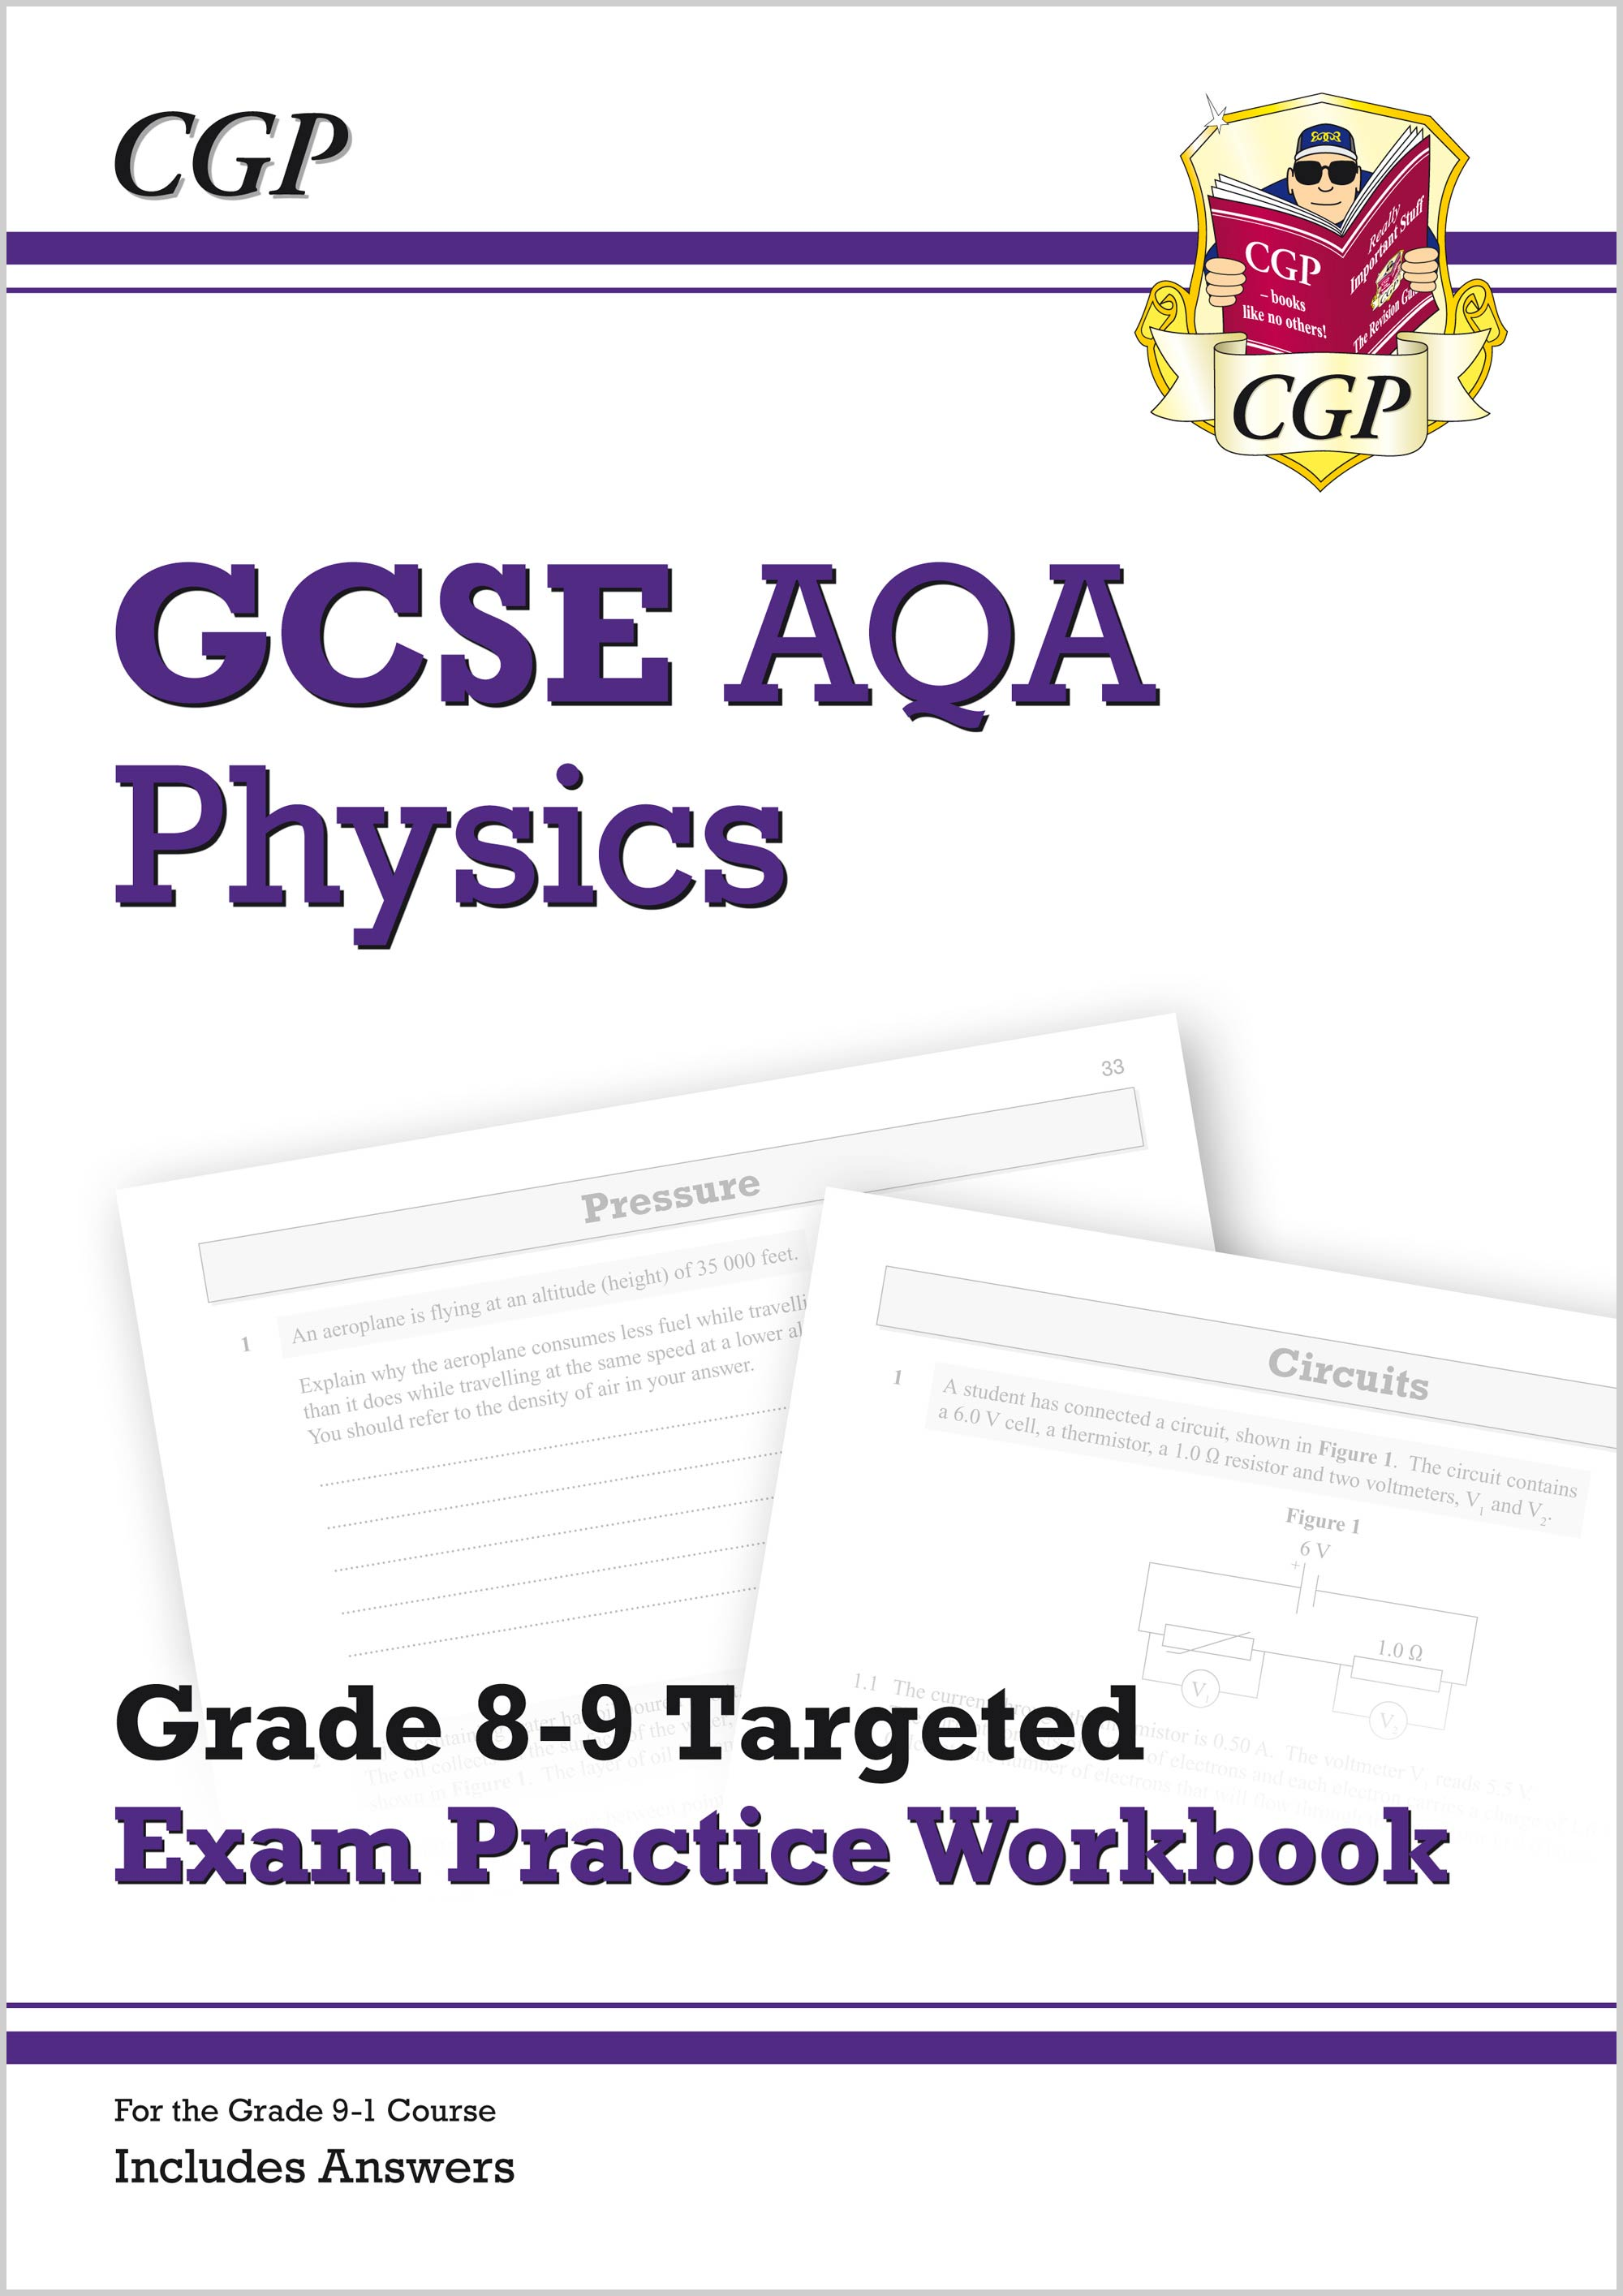 PA9Q41 - New GCSE Physics AQA Grade 8-9 Targeted Exam Practice Workbook (includes Answers)